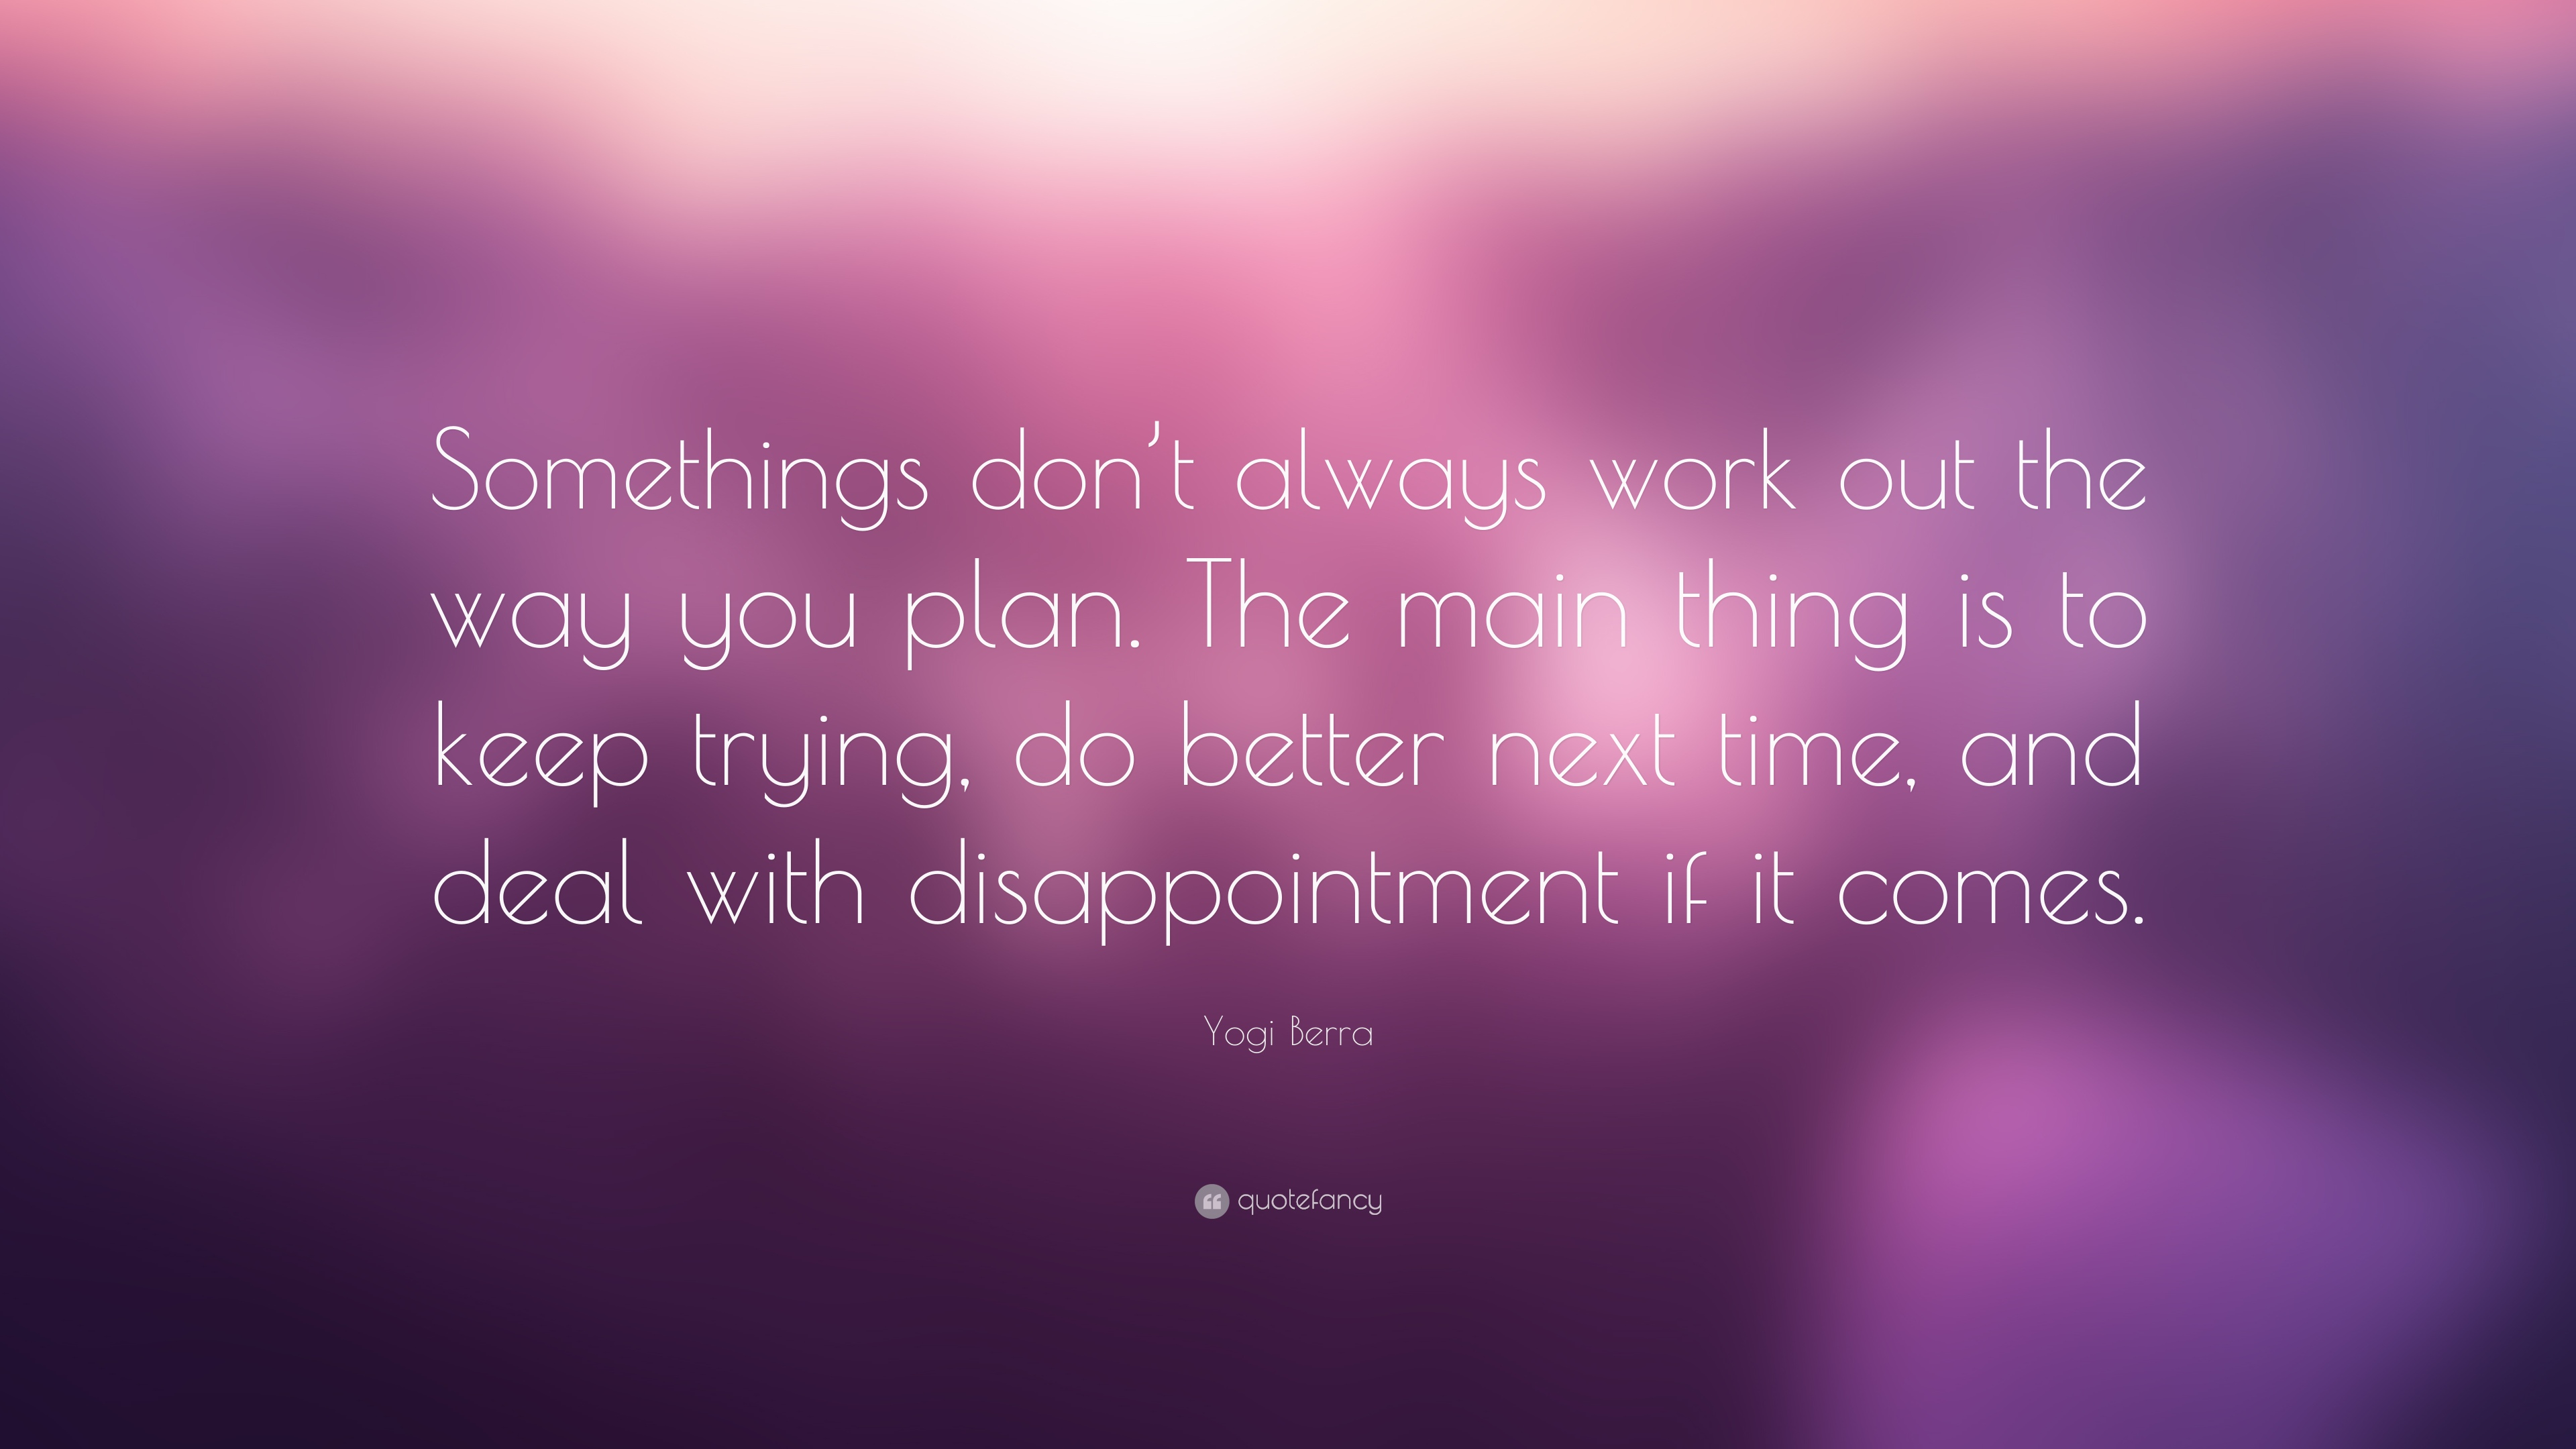 yogi berra quote somethings don t always work out the way you plan